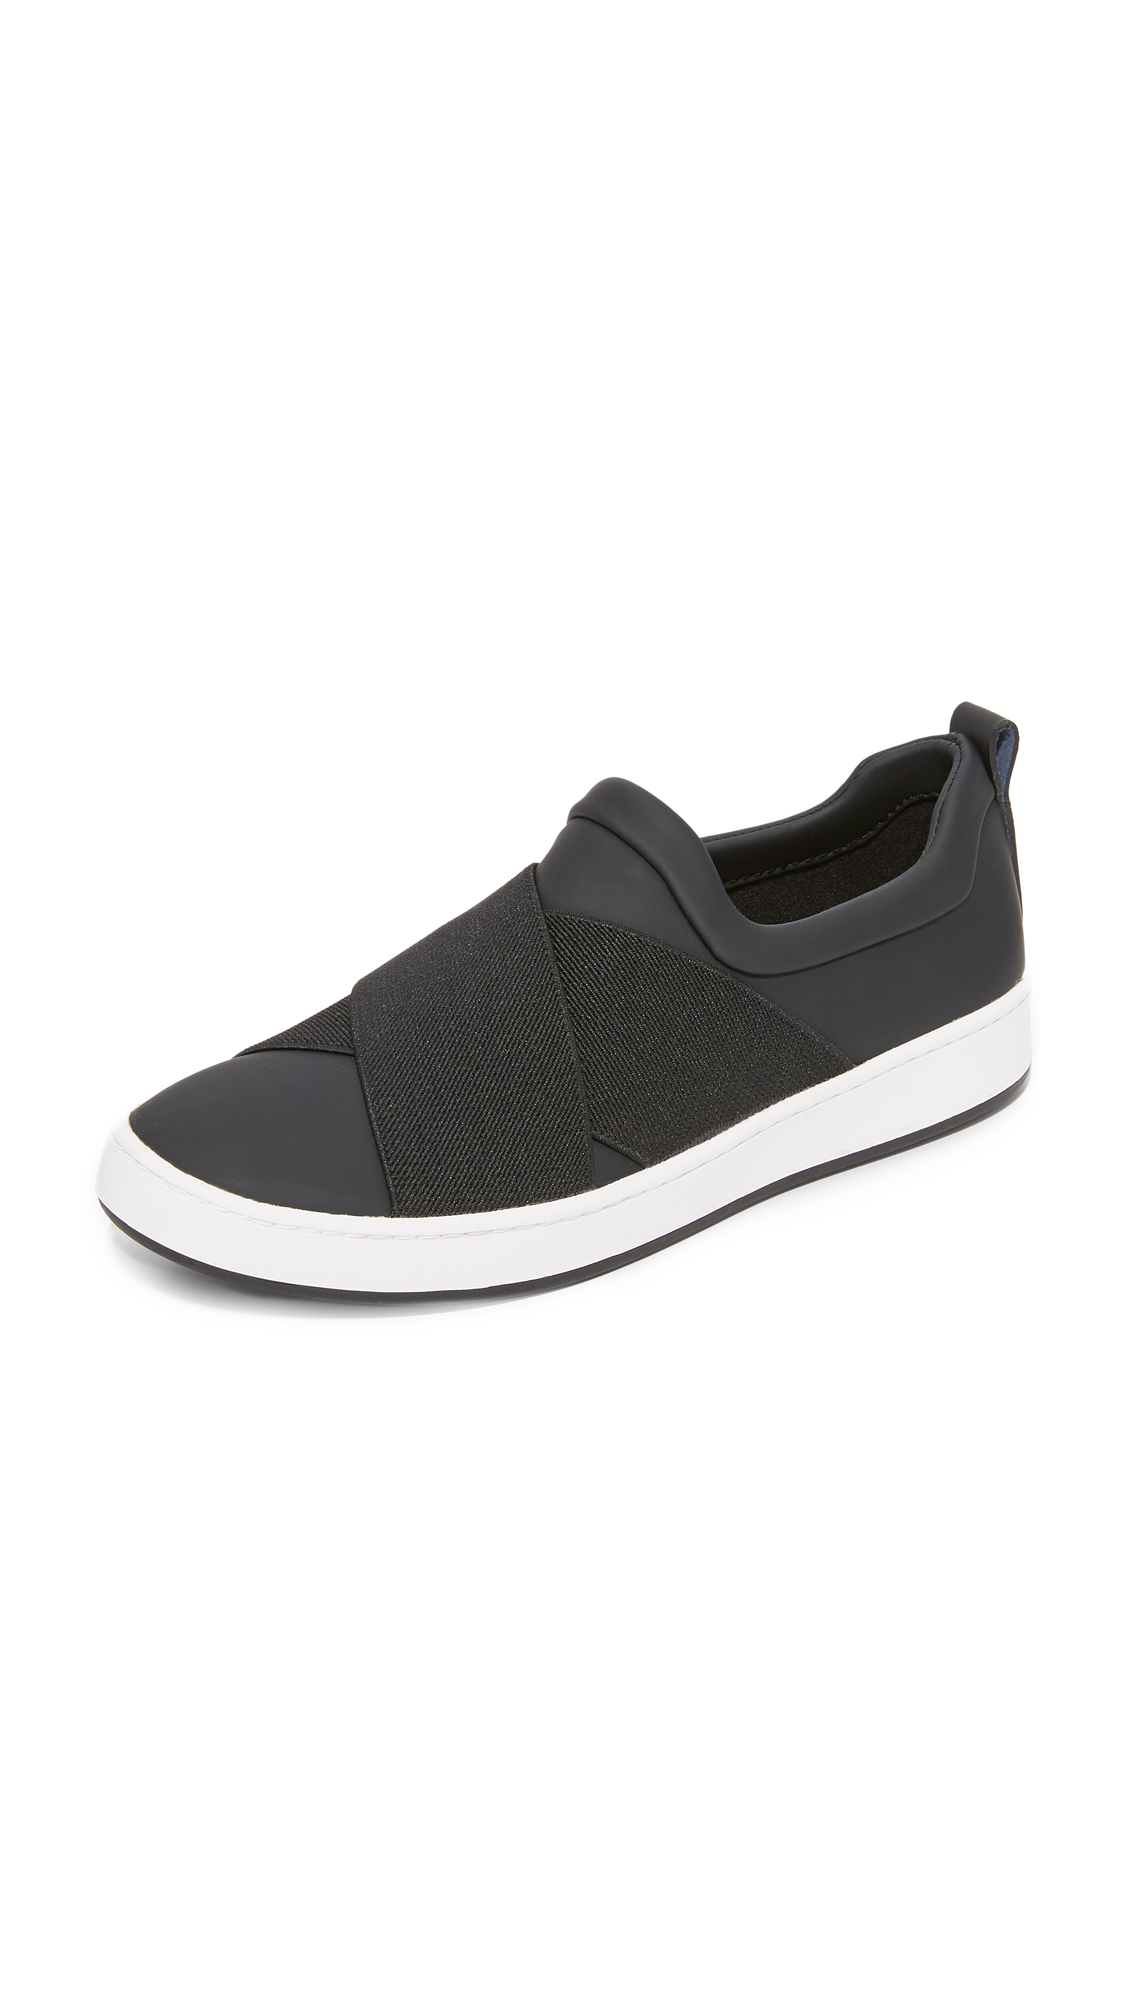 DKNY Brayden Sock Slip On Sneakers